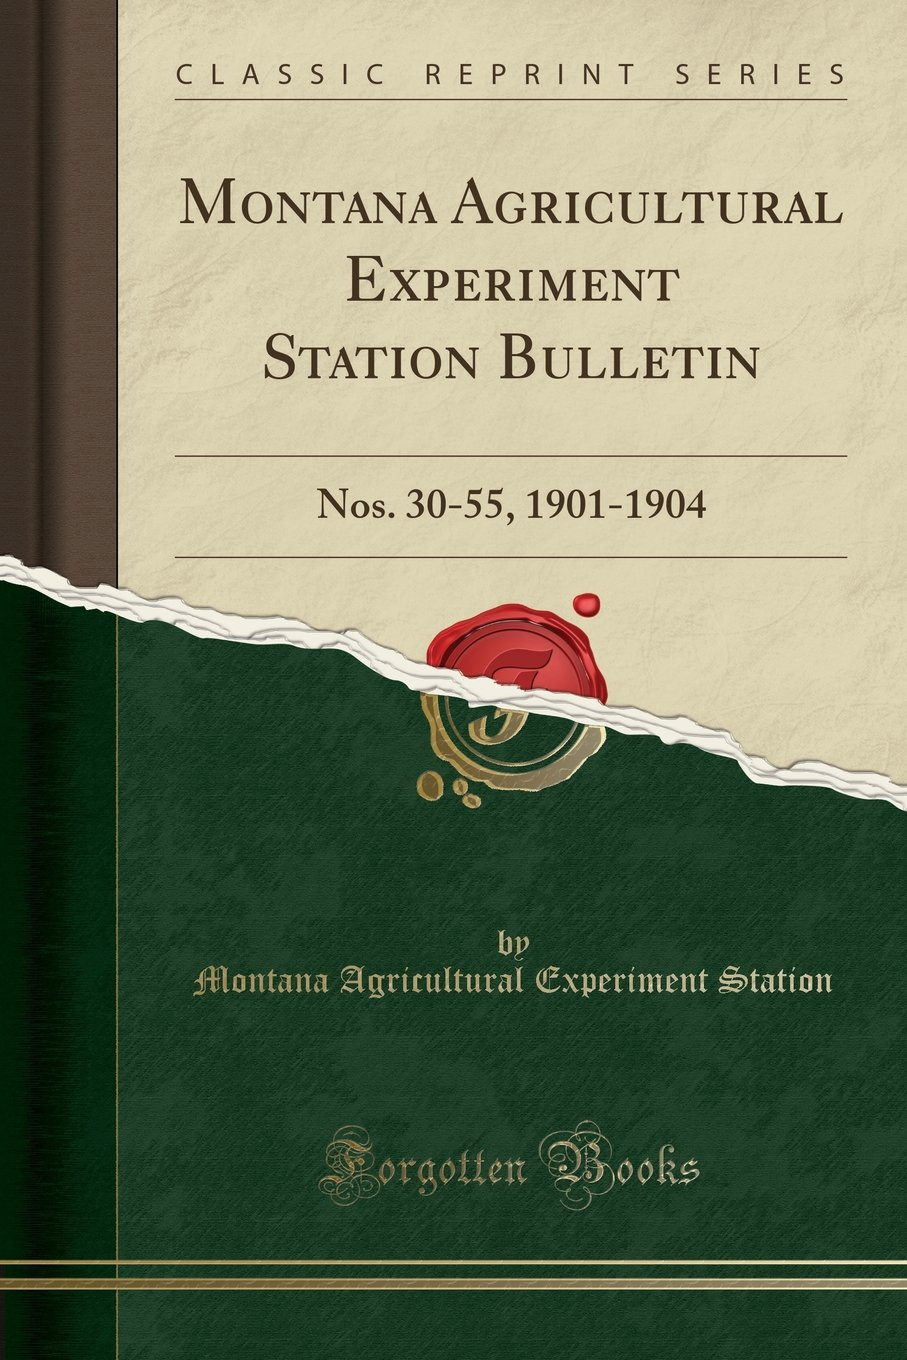 Download Montana Agricultural Experiment Station Bulletin: Nos. 30-55, 1901-1904 (Classic Reprint) pdf